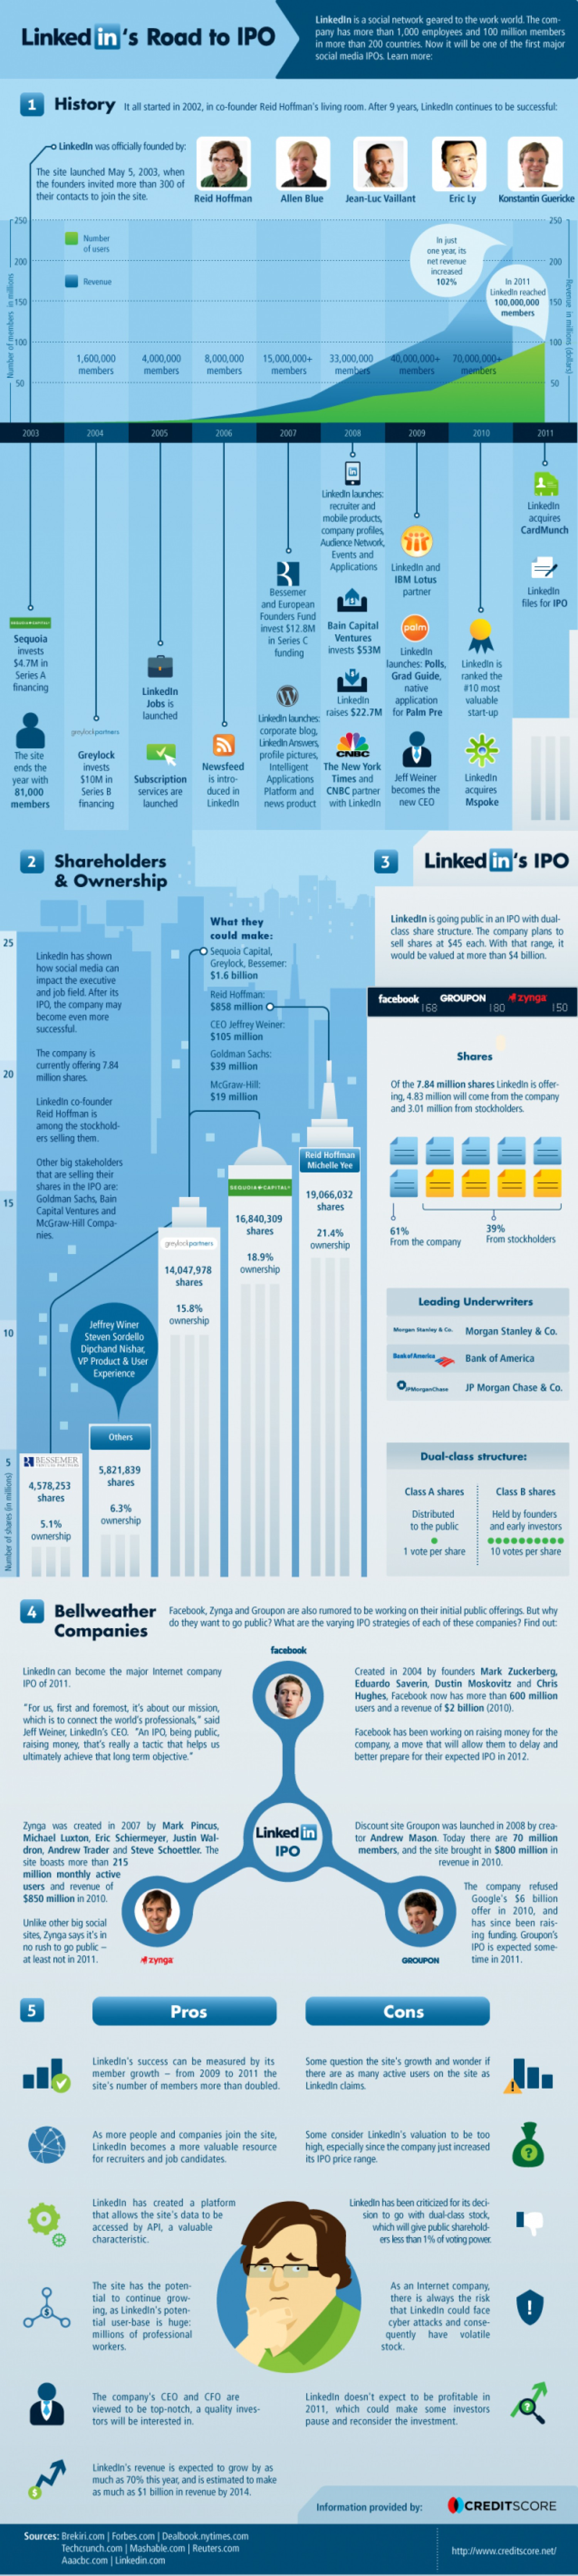 14. LinkedIn's Road to IPO